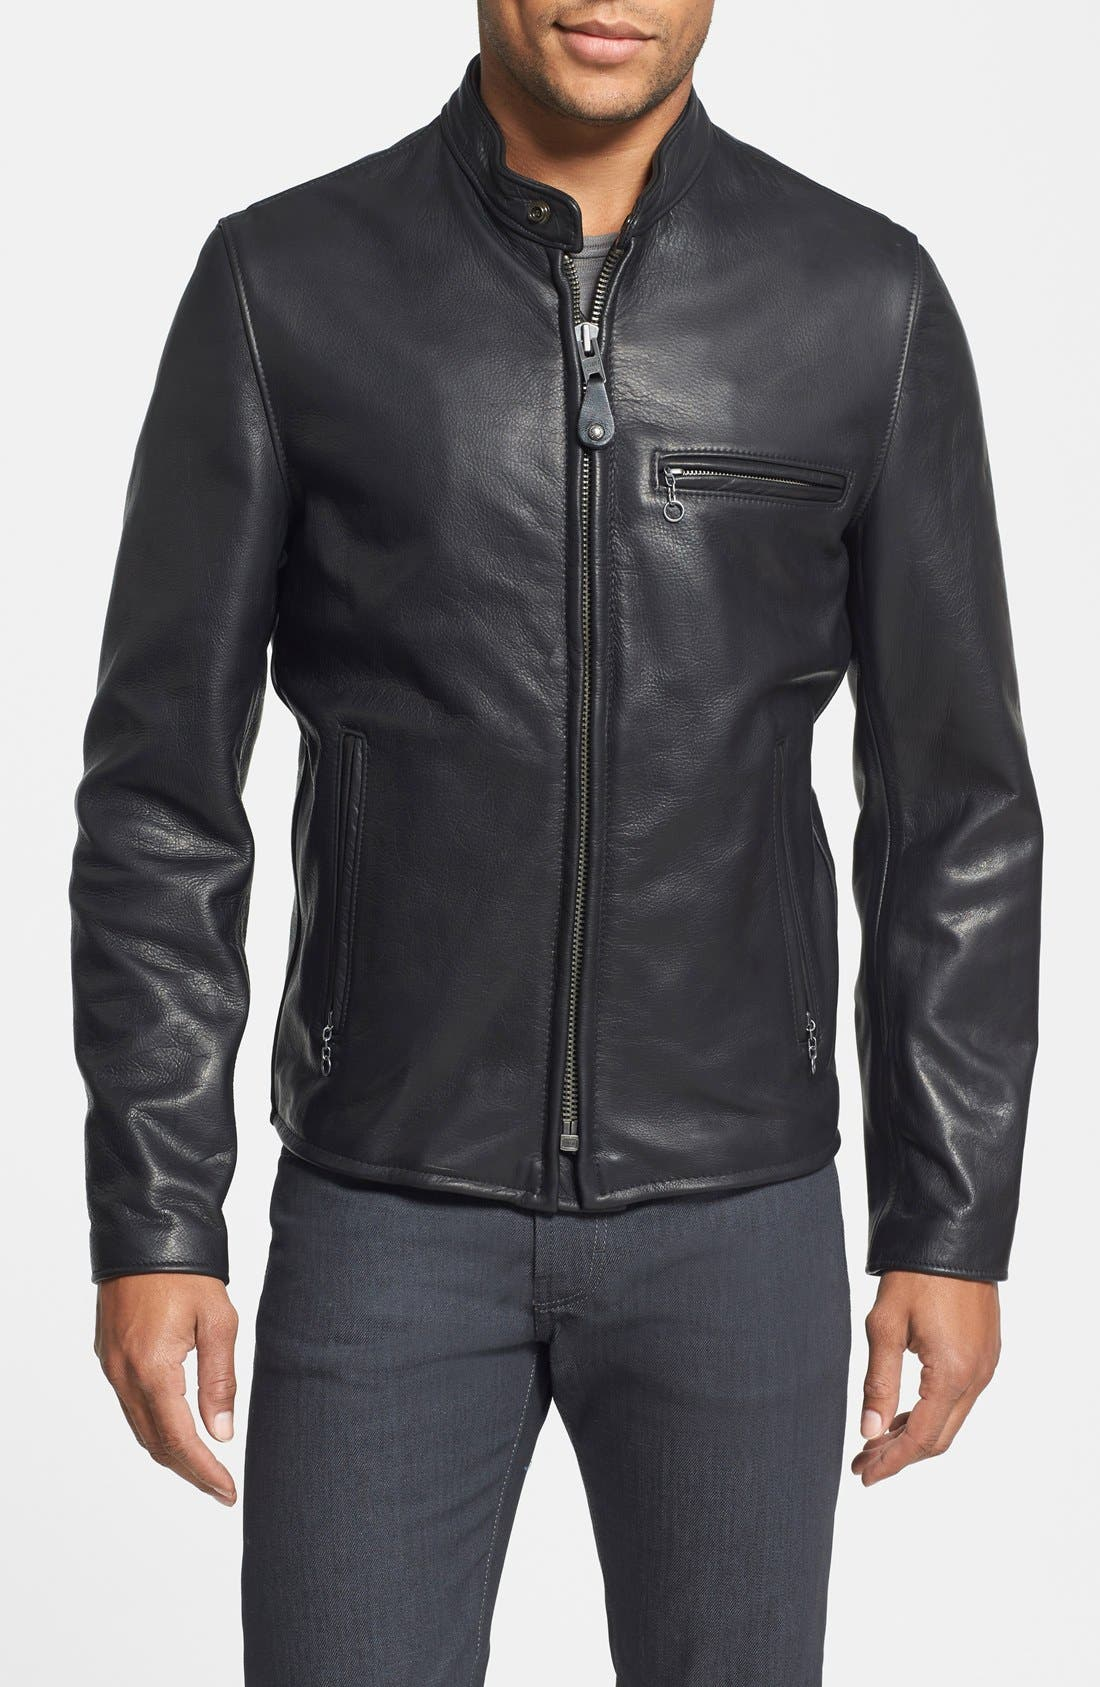 SCHOTT NYC, Café Racer Oil Tanned Cowhide Leather Moto Jacket, Main thumbnail 1, color, BLACK